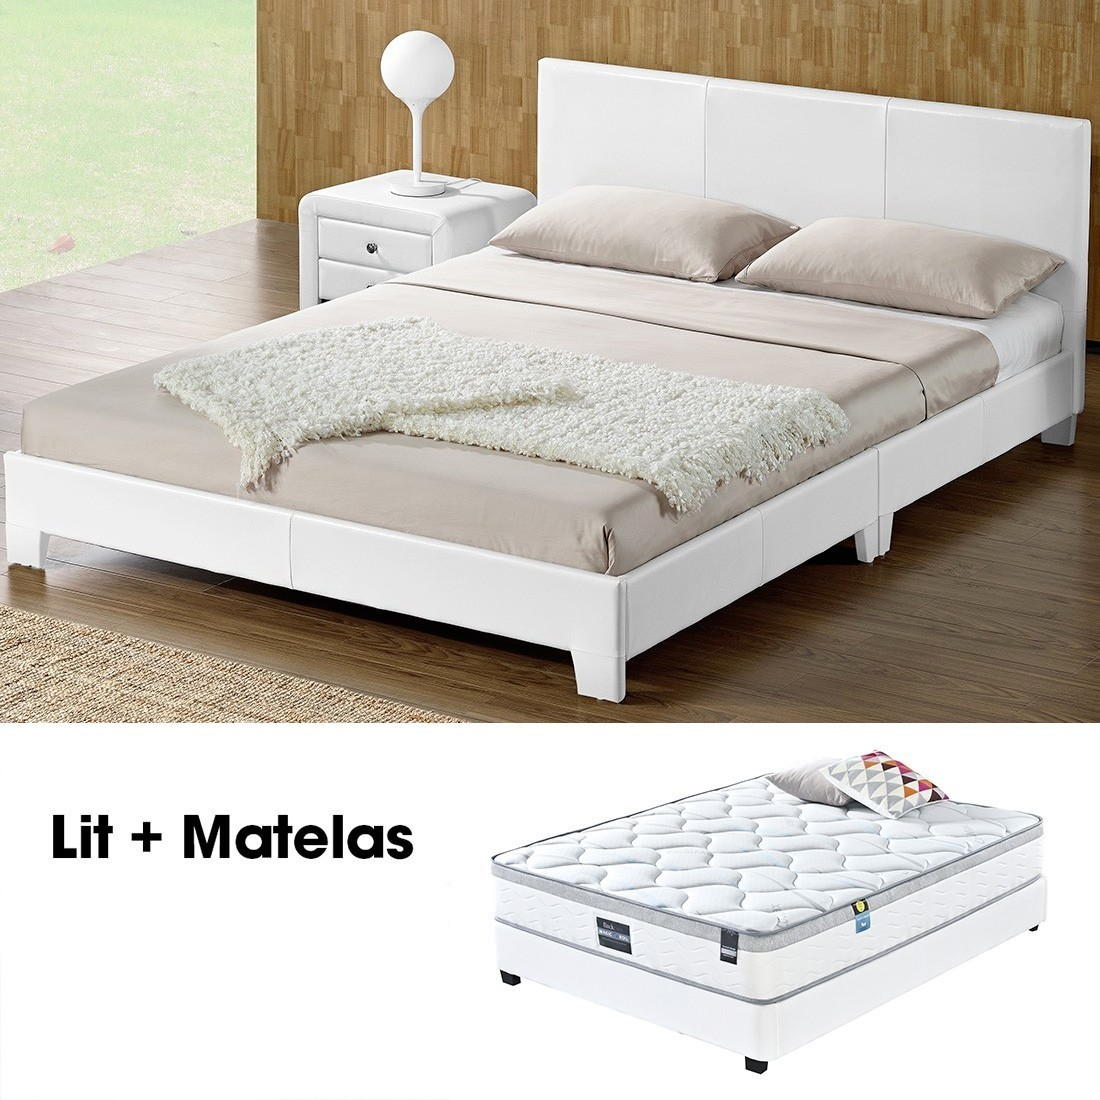 lit complet matelas et sommier simpli 160x200. Black Bedroom Furniture Sets. Home Design Ideas